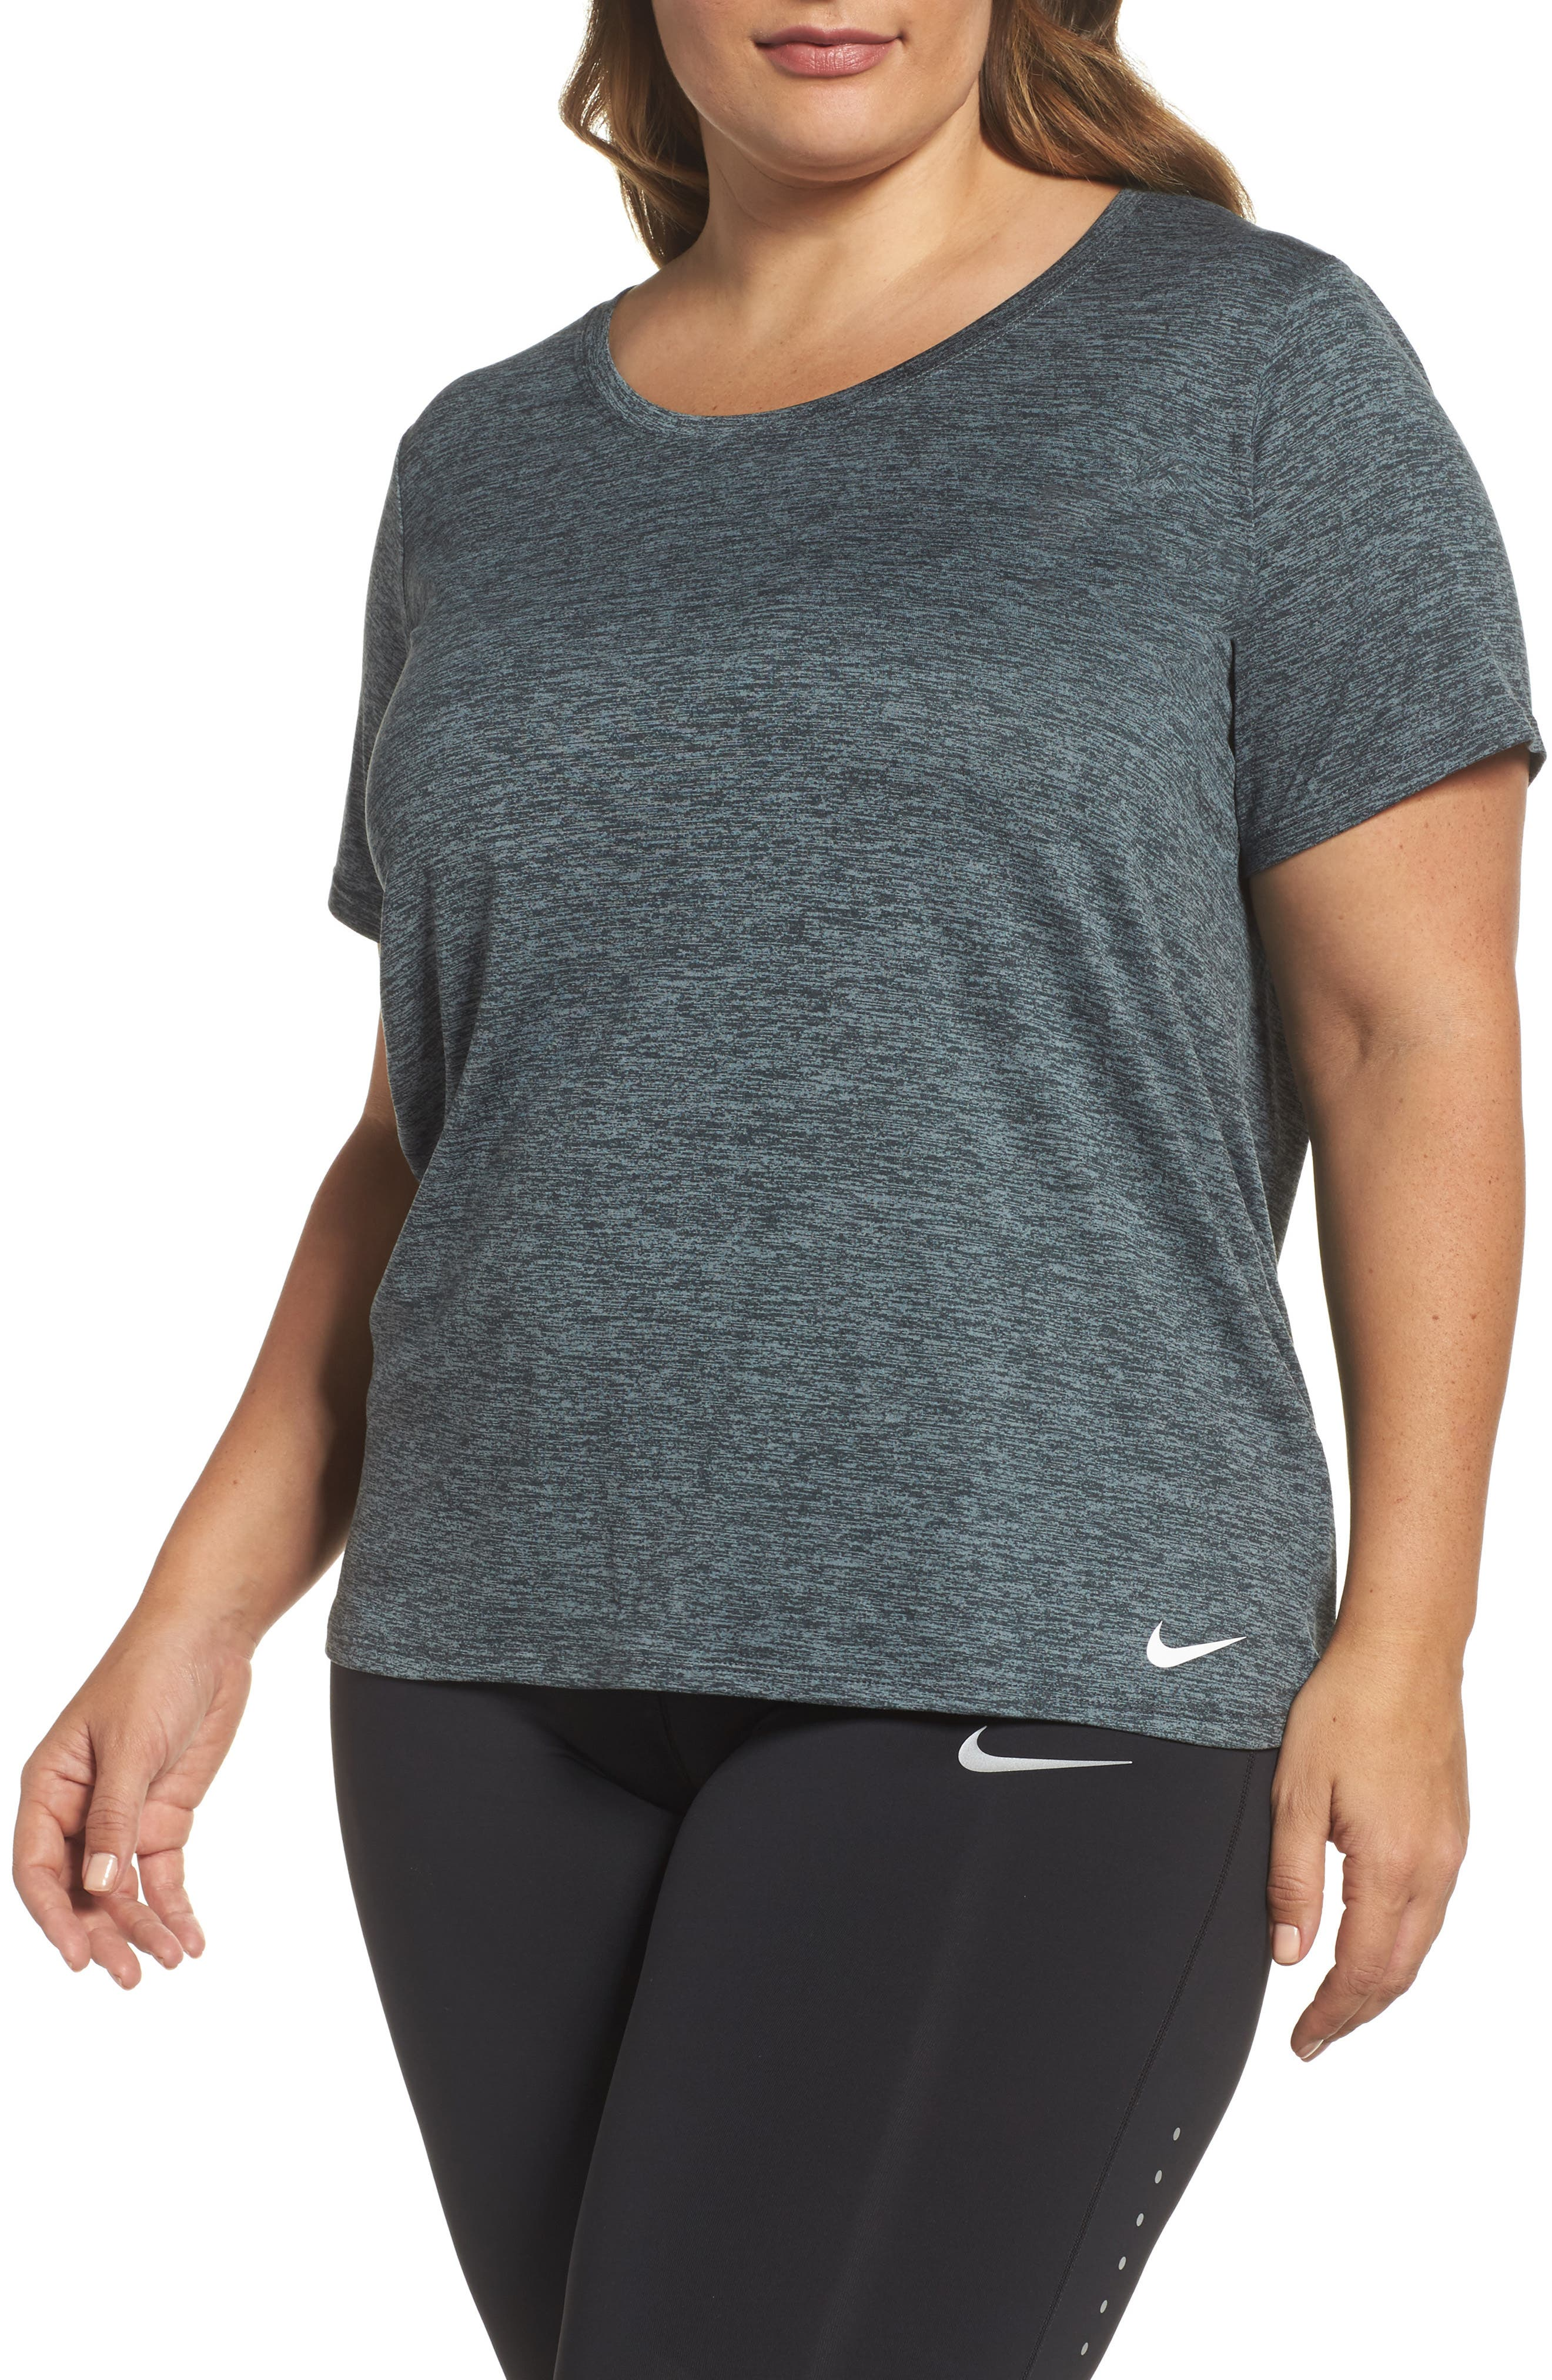 Alternate Image 1 Selected - Nike Dry Legend Training Tee (Plus Size)